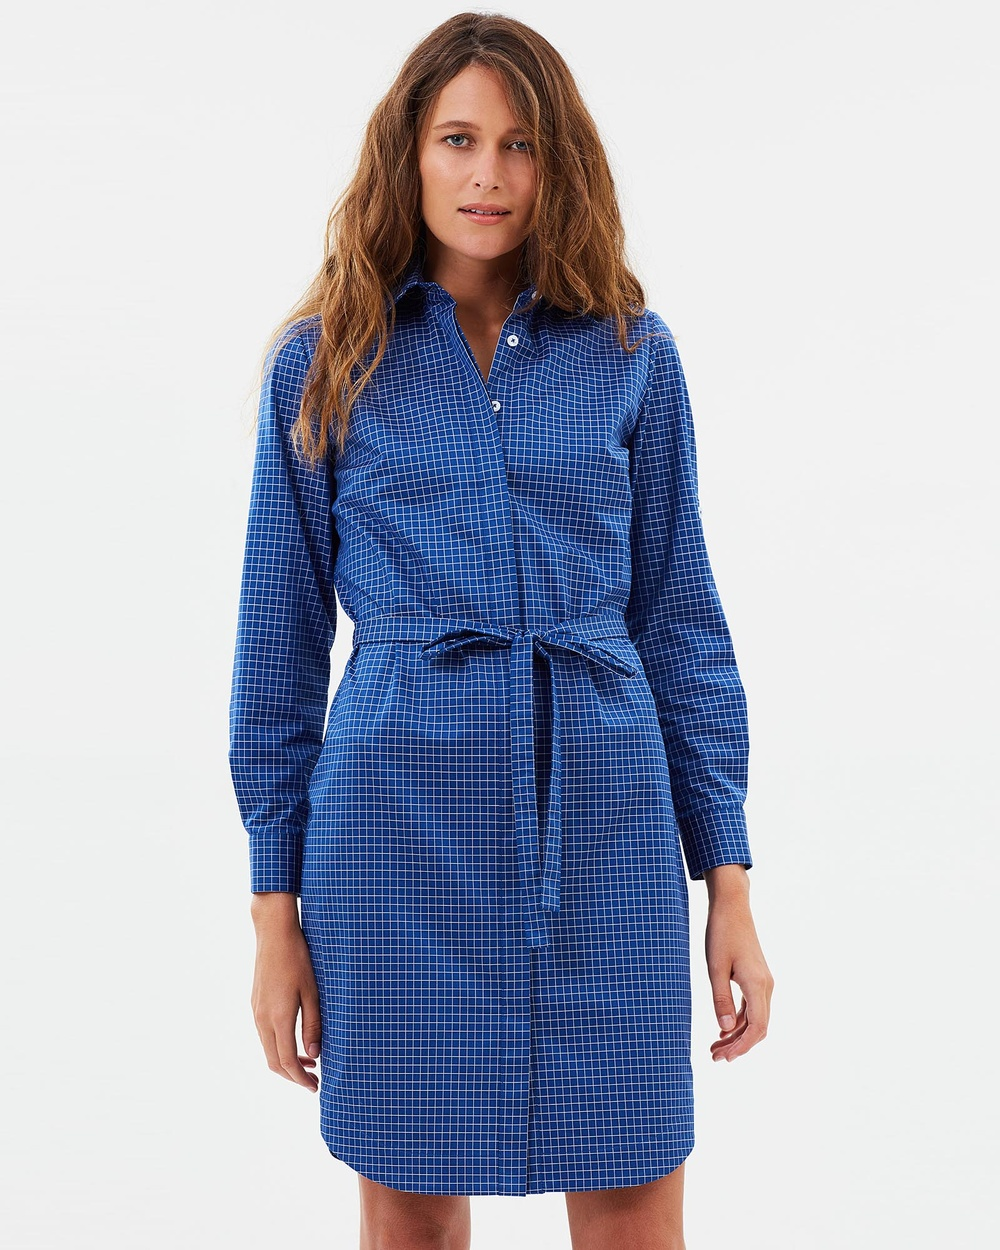 Farage Lucinda Shirt Dress Dresses Blue Lucinda Shirt Dress